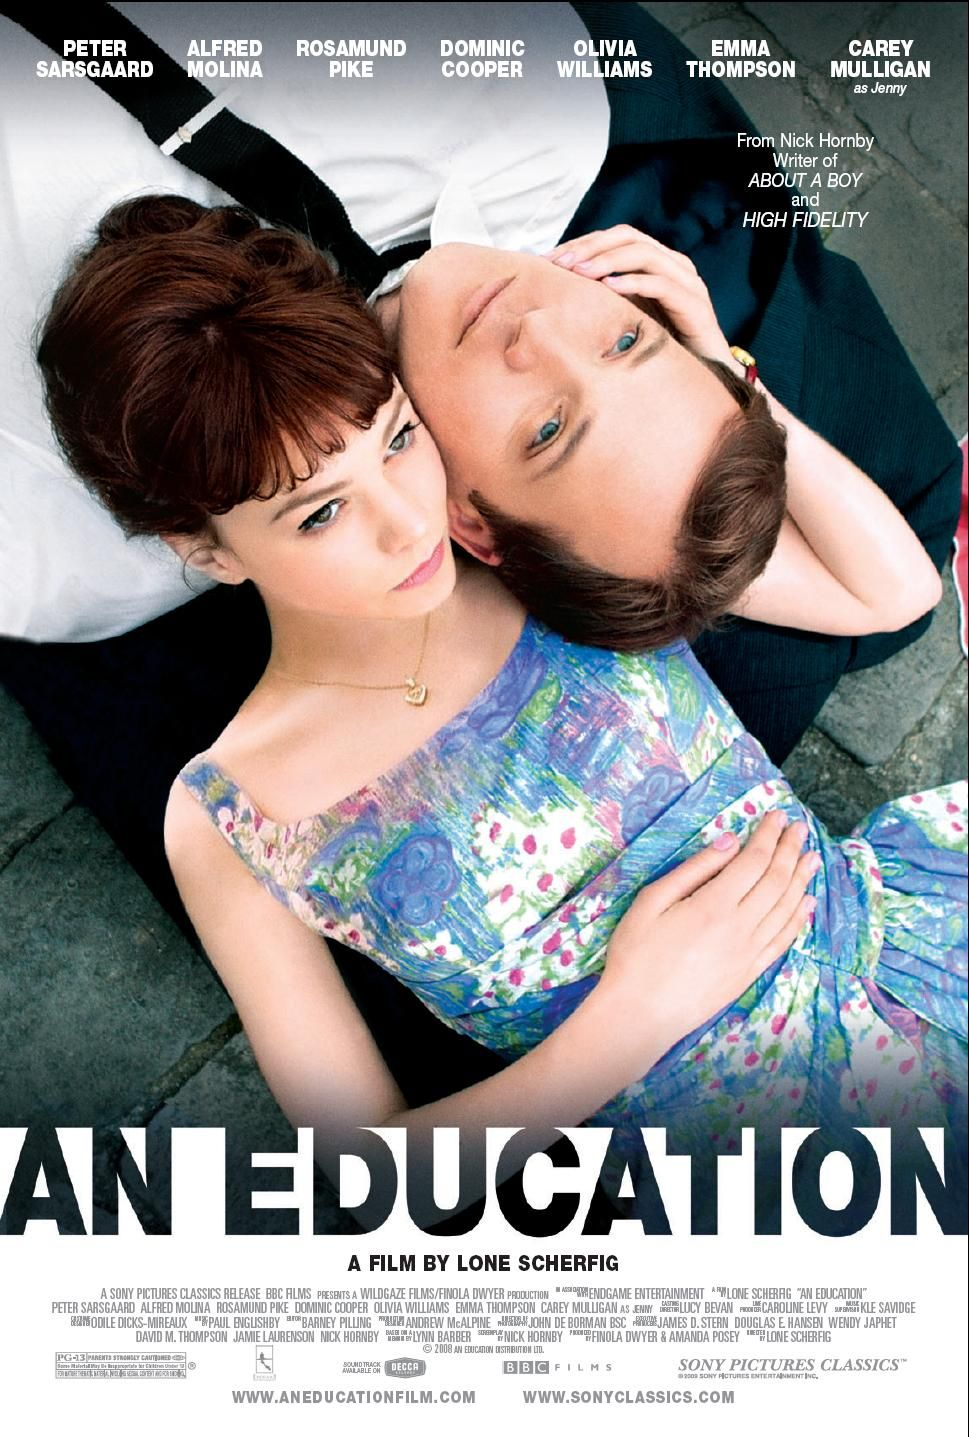 An Education An Education movie poster